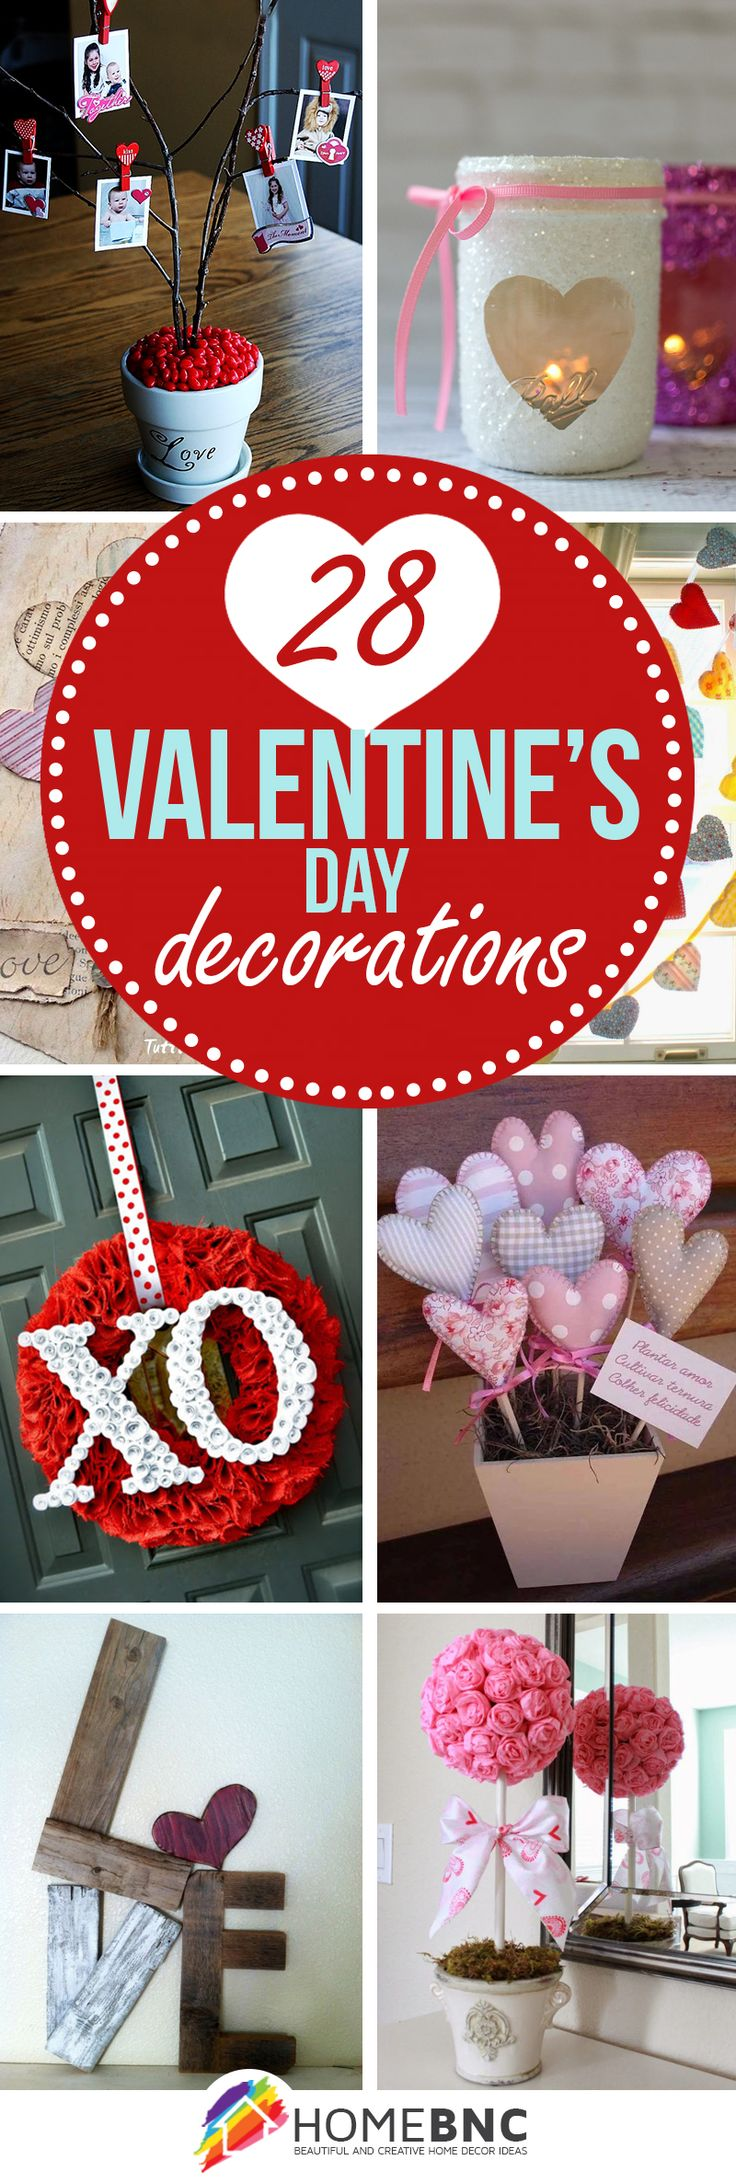 28 super creative valentines day decor ideas to inspire romance